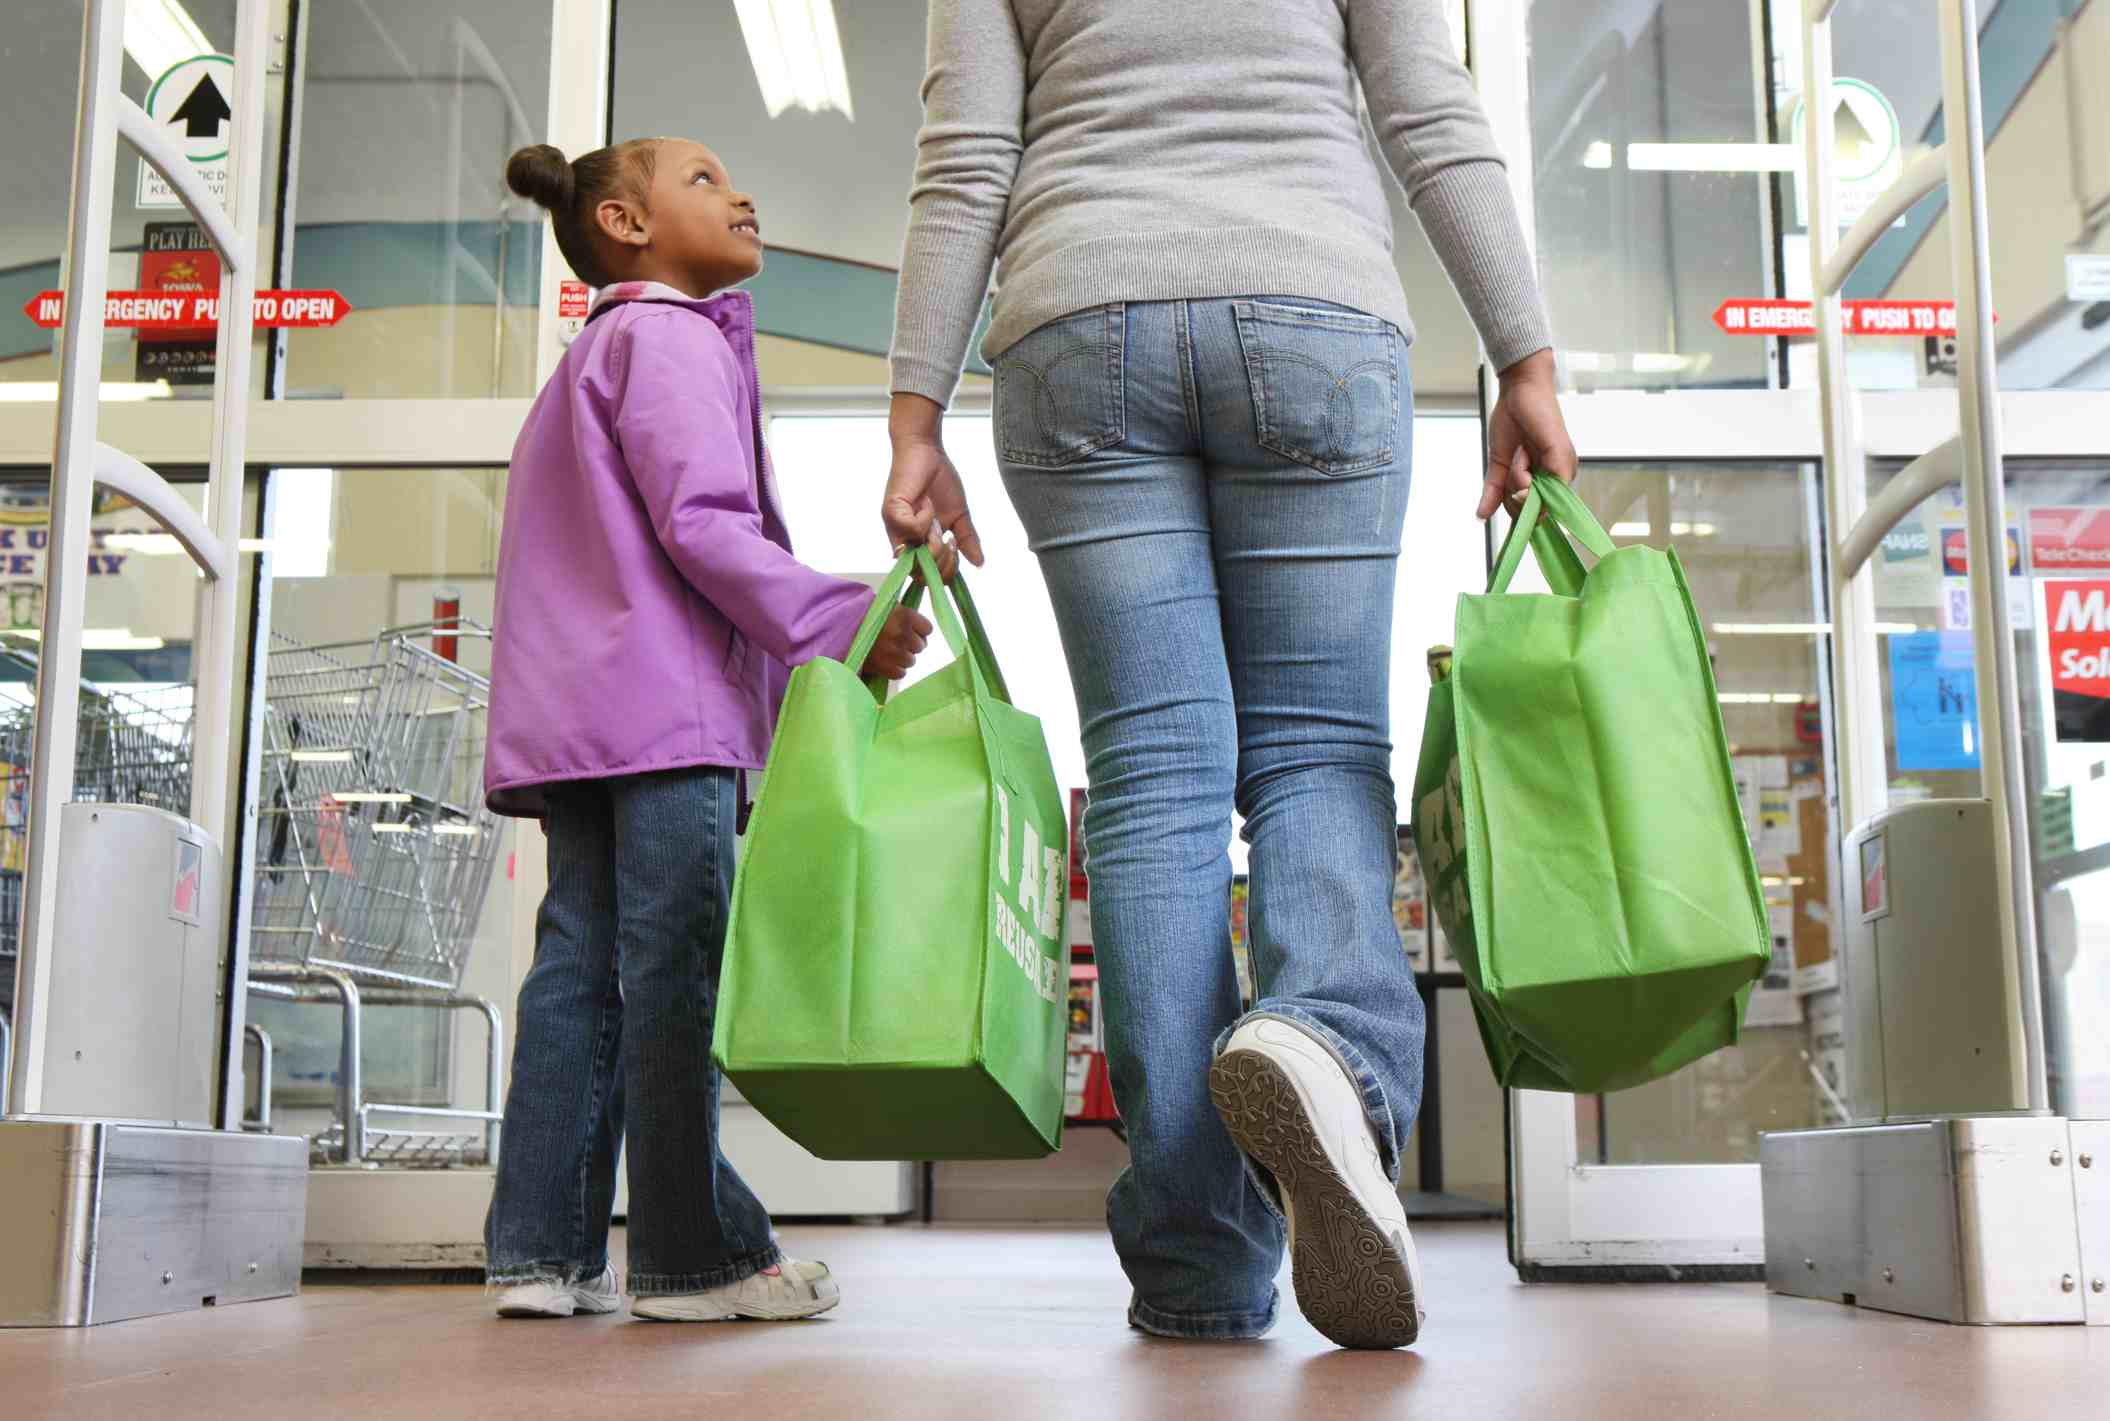 Mom and daughter walking out of store carrying reusable grocery bags